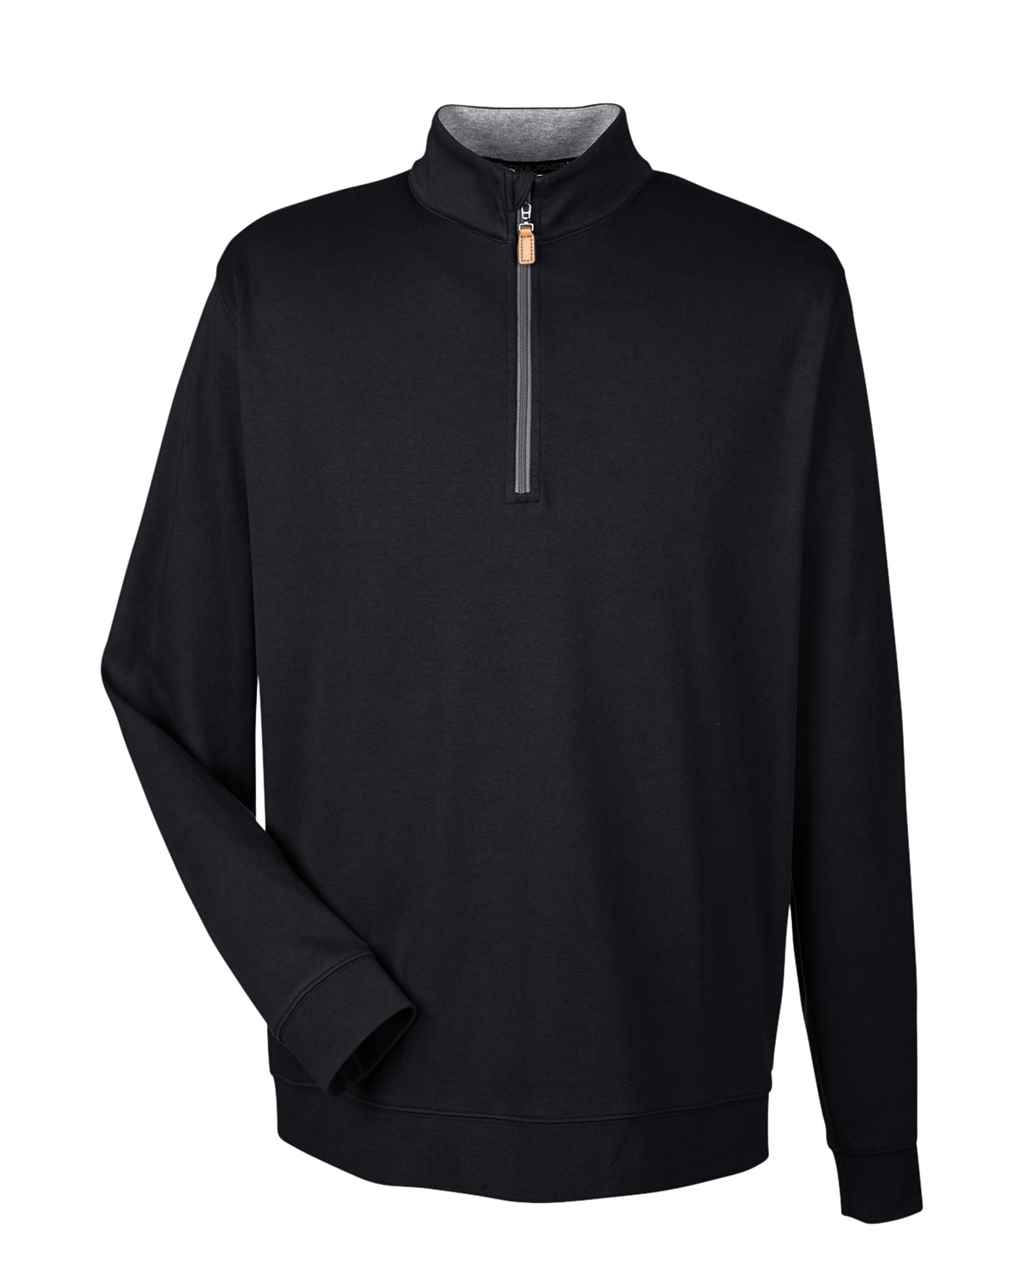 Picture of Devon & Jones Men's Drytec Performance Quarter-Zip